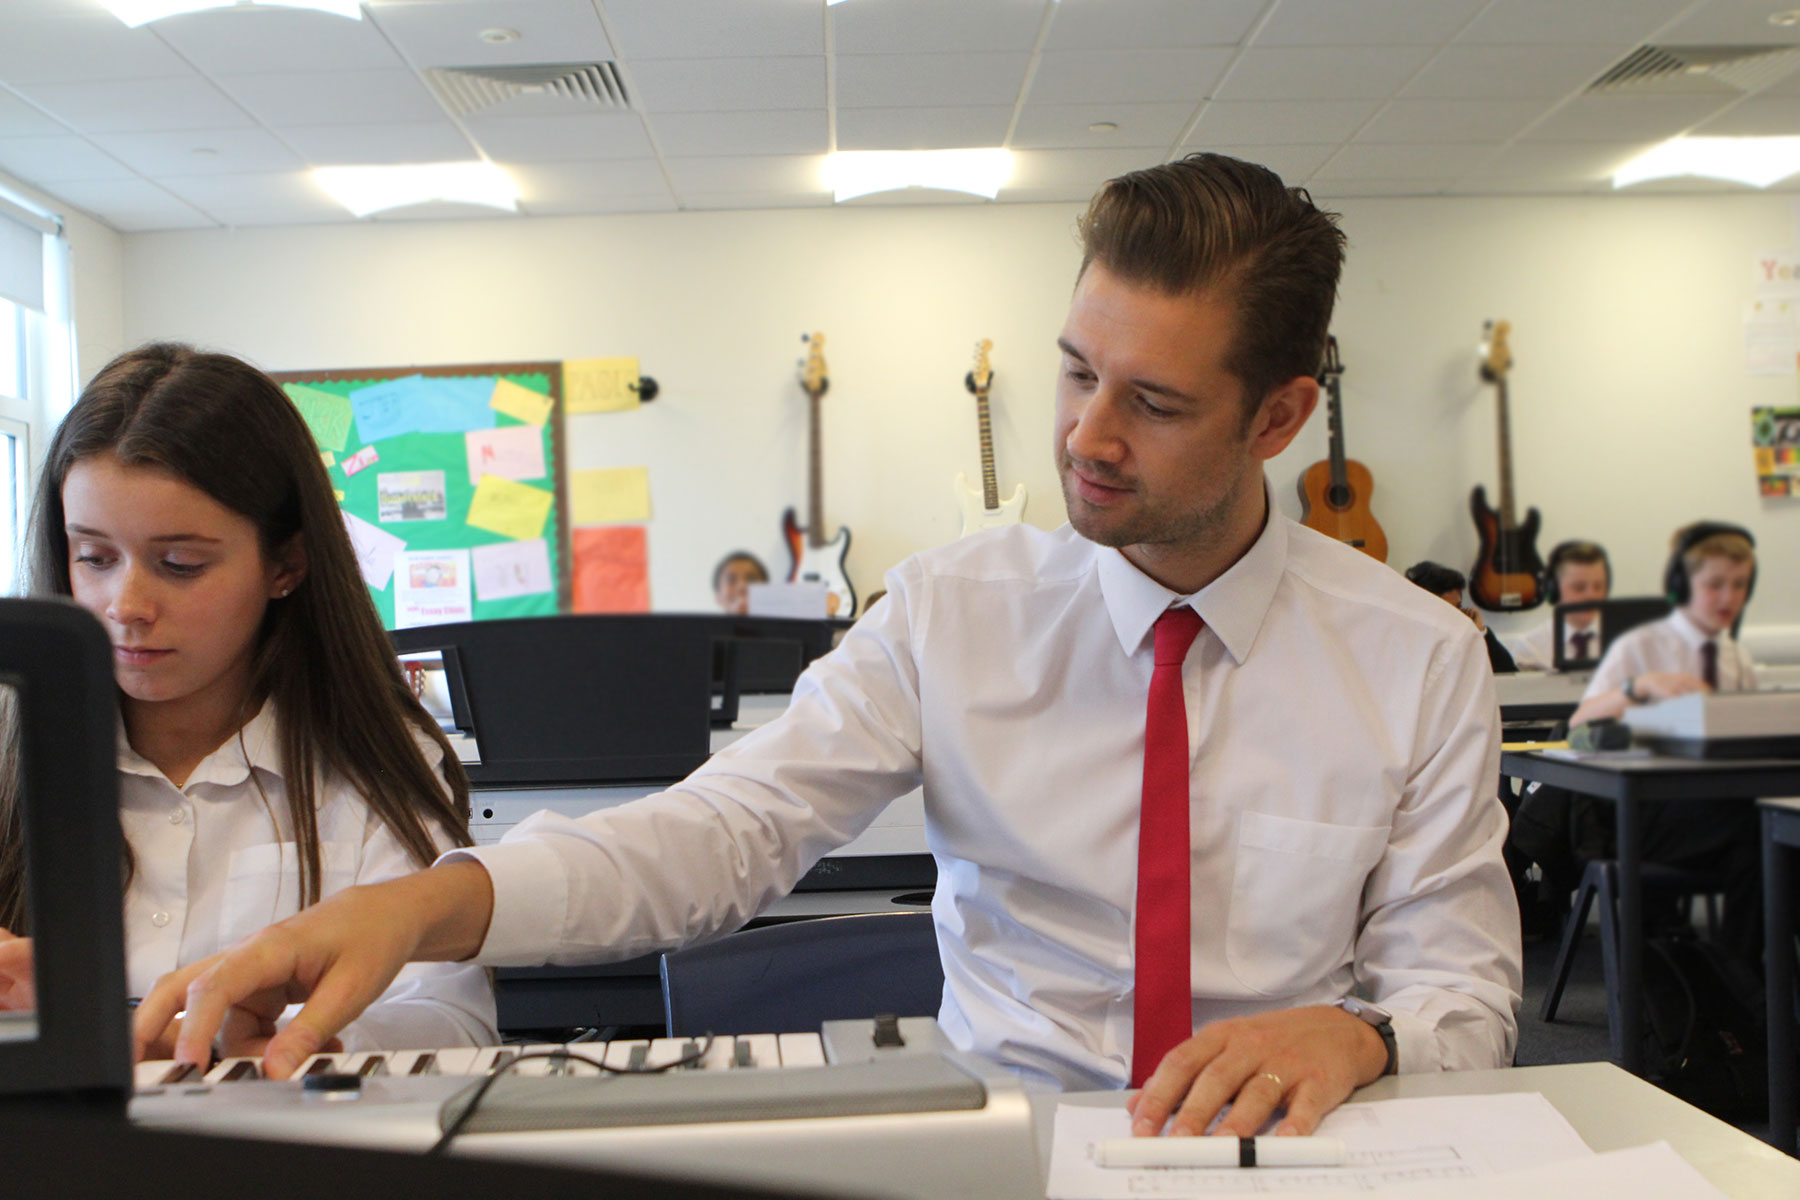 teacher and student at keyboard